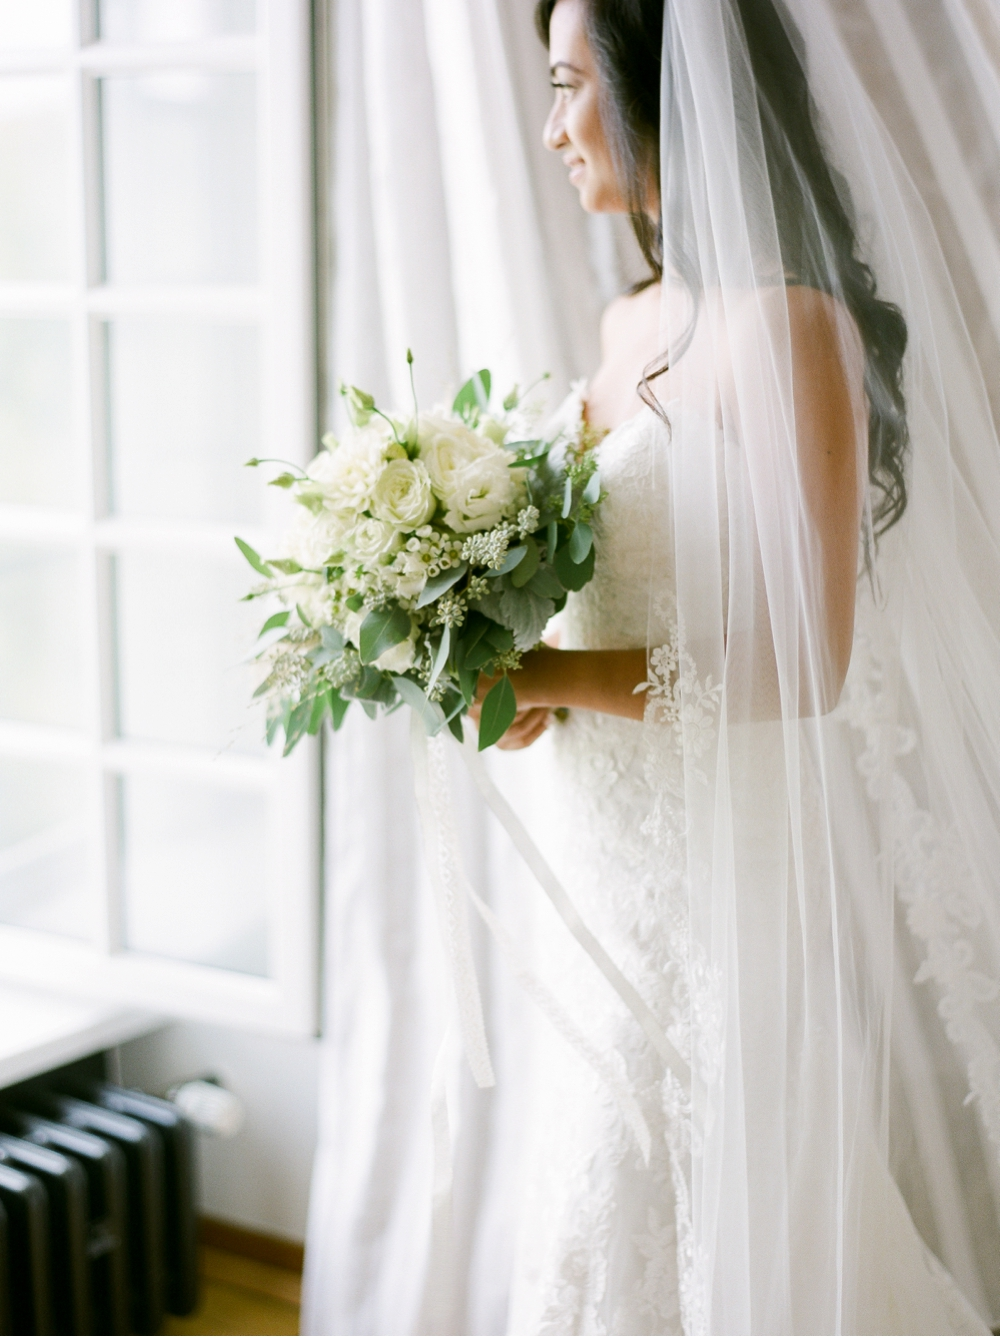 Wedding_Photographer_Tuscany_Florence_Lake_Como©MadalinaSheldon__0040.jpg